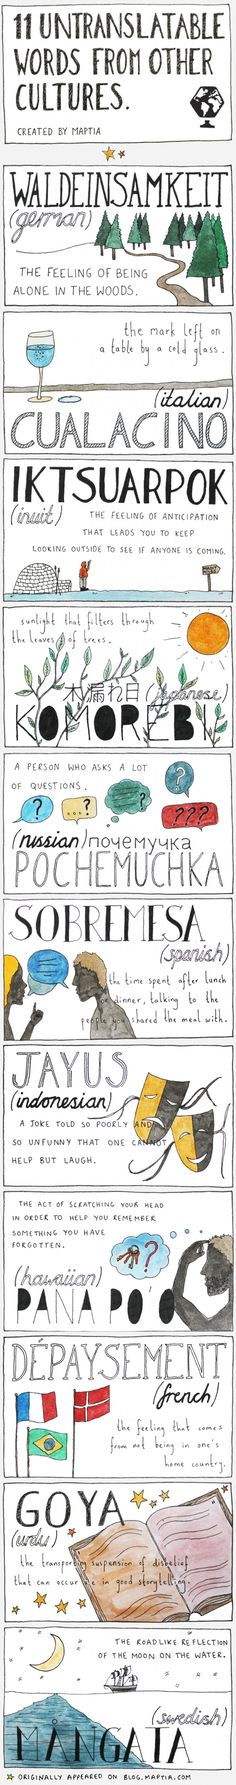 11 Untranslatable Words From Various Languages >>> this is cute